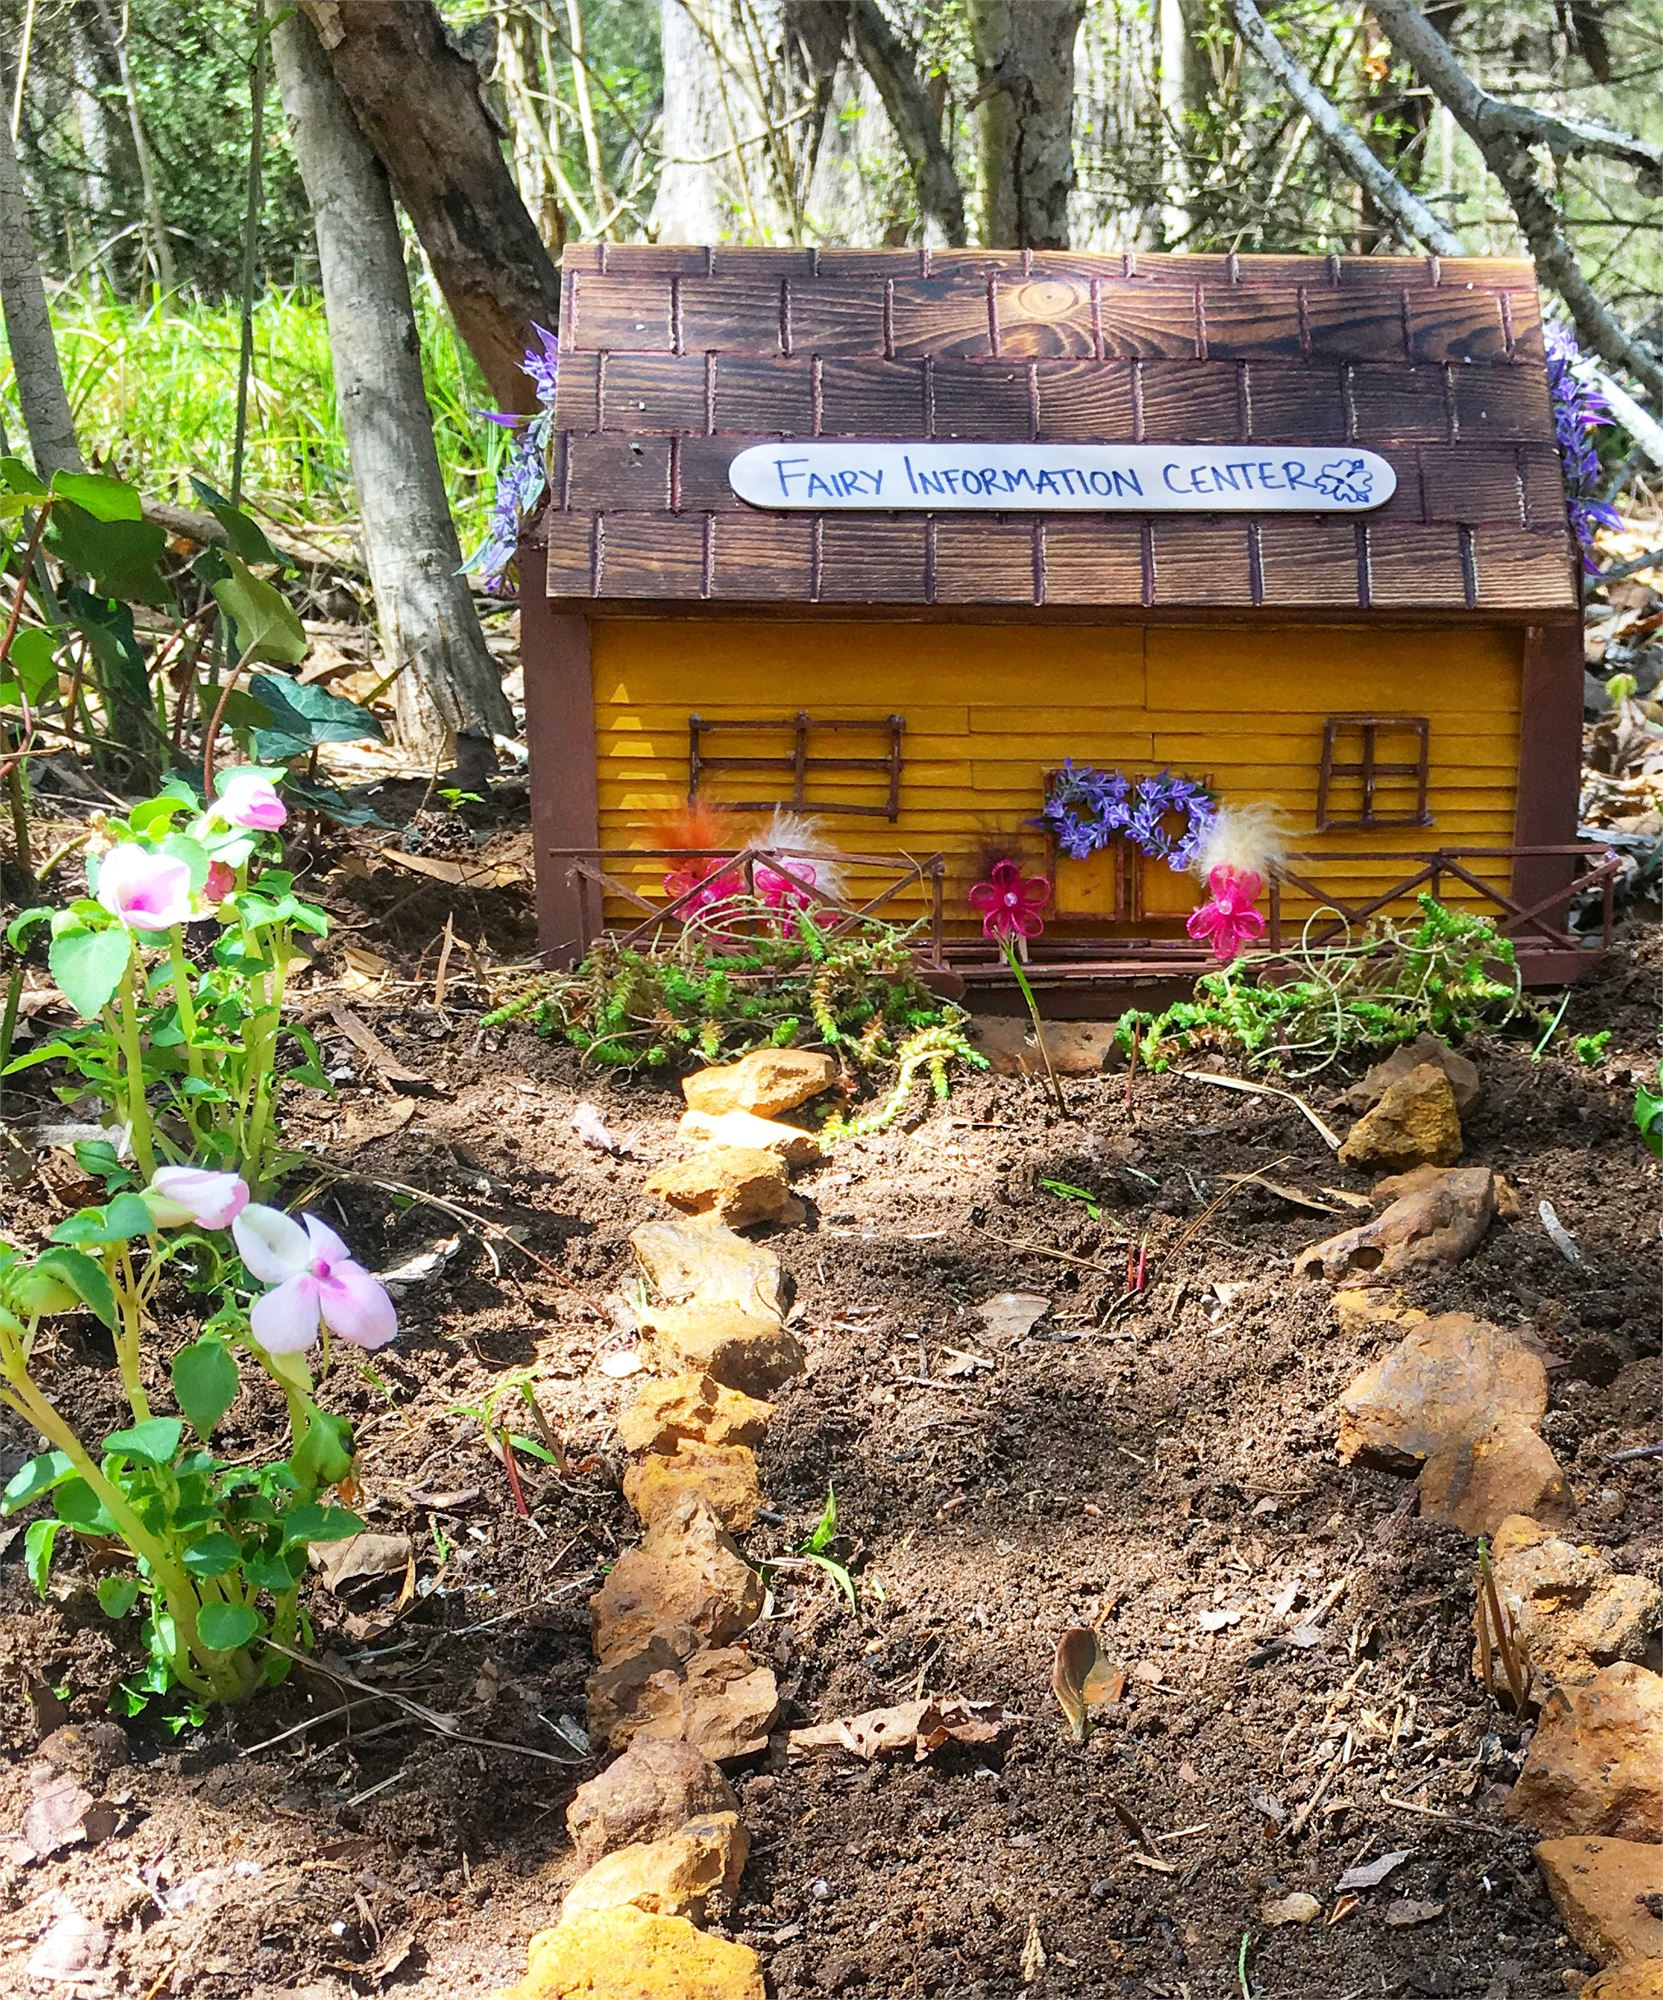 Fairy Information Center